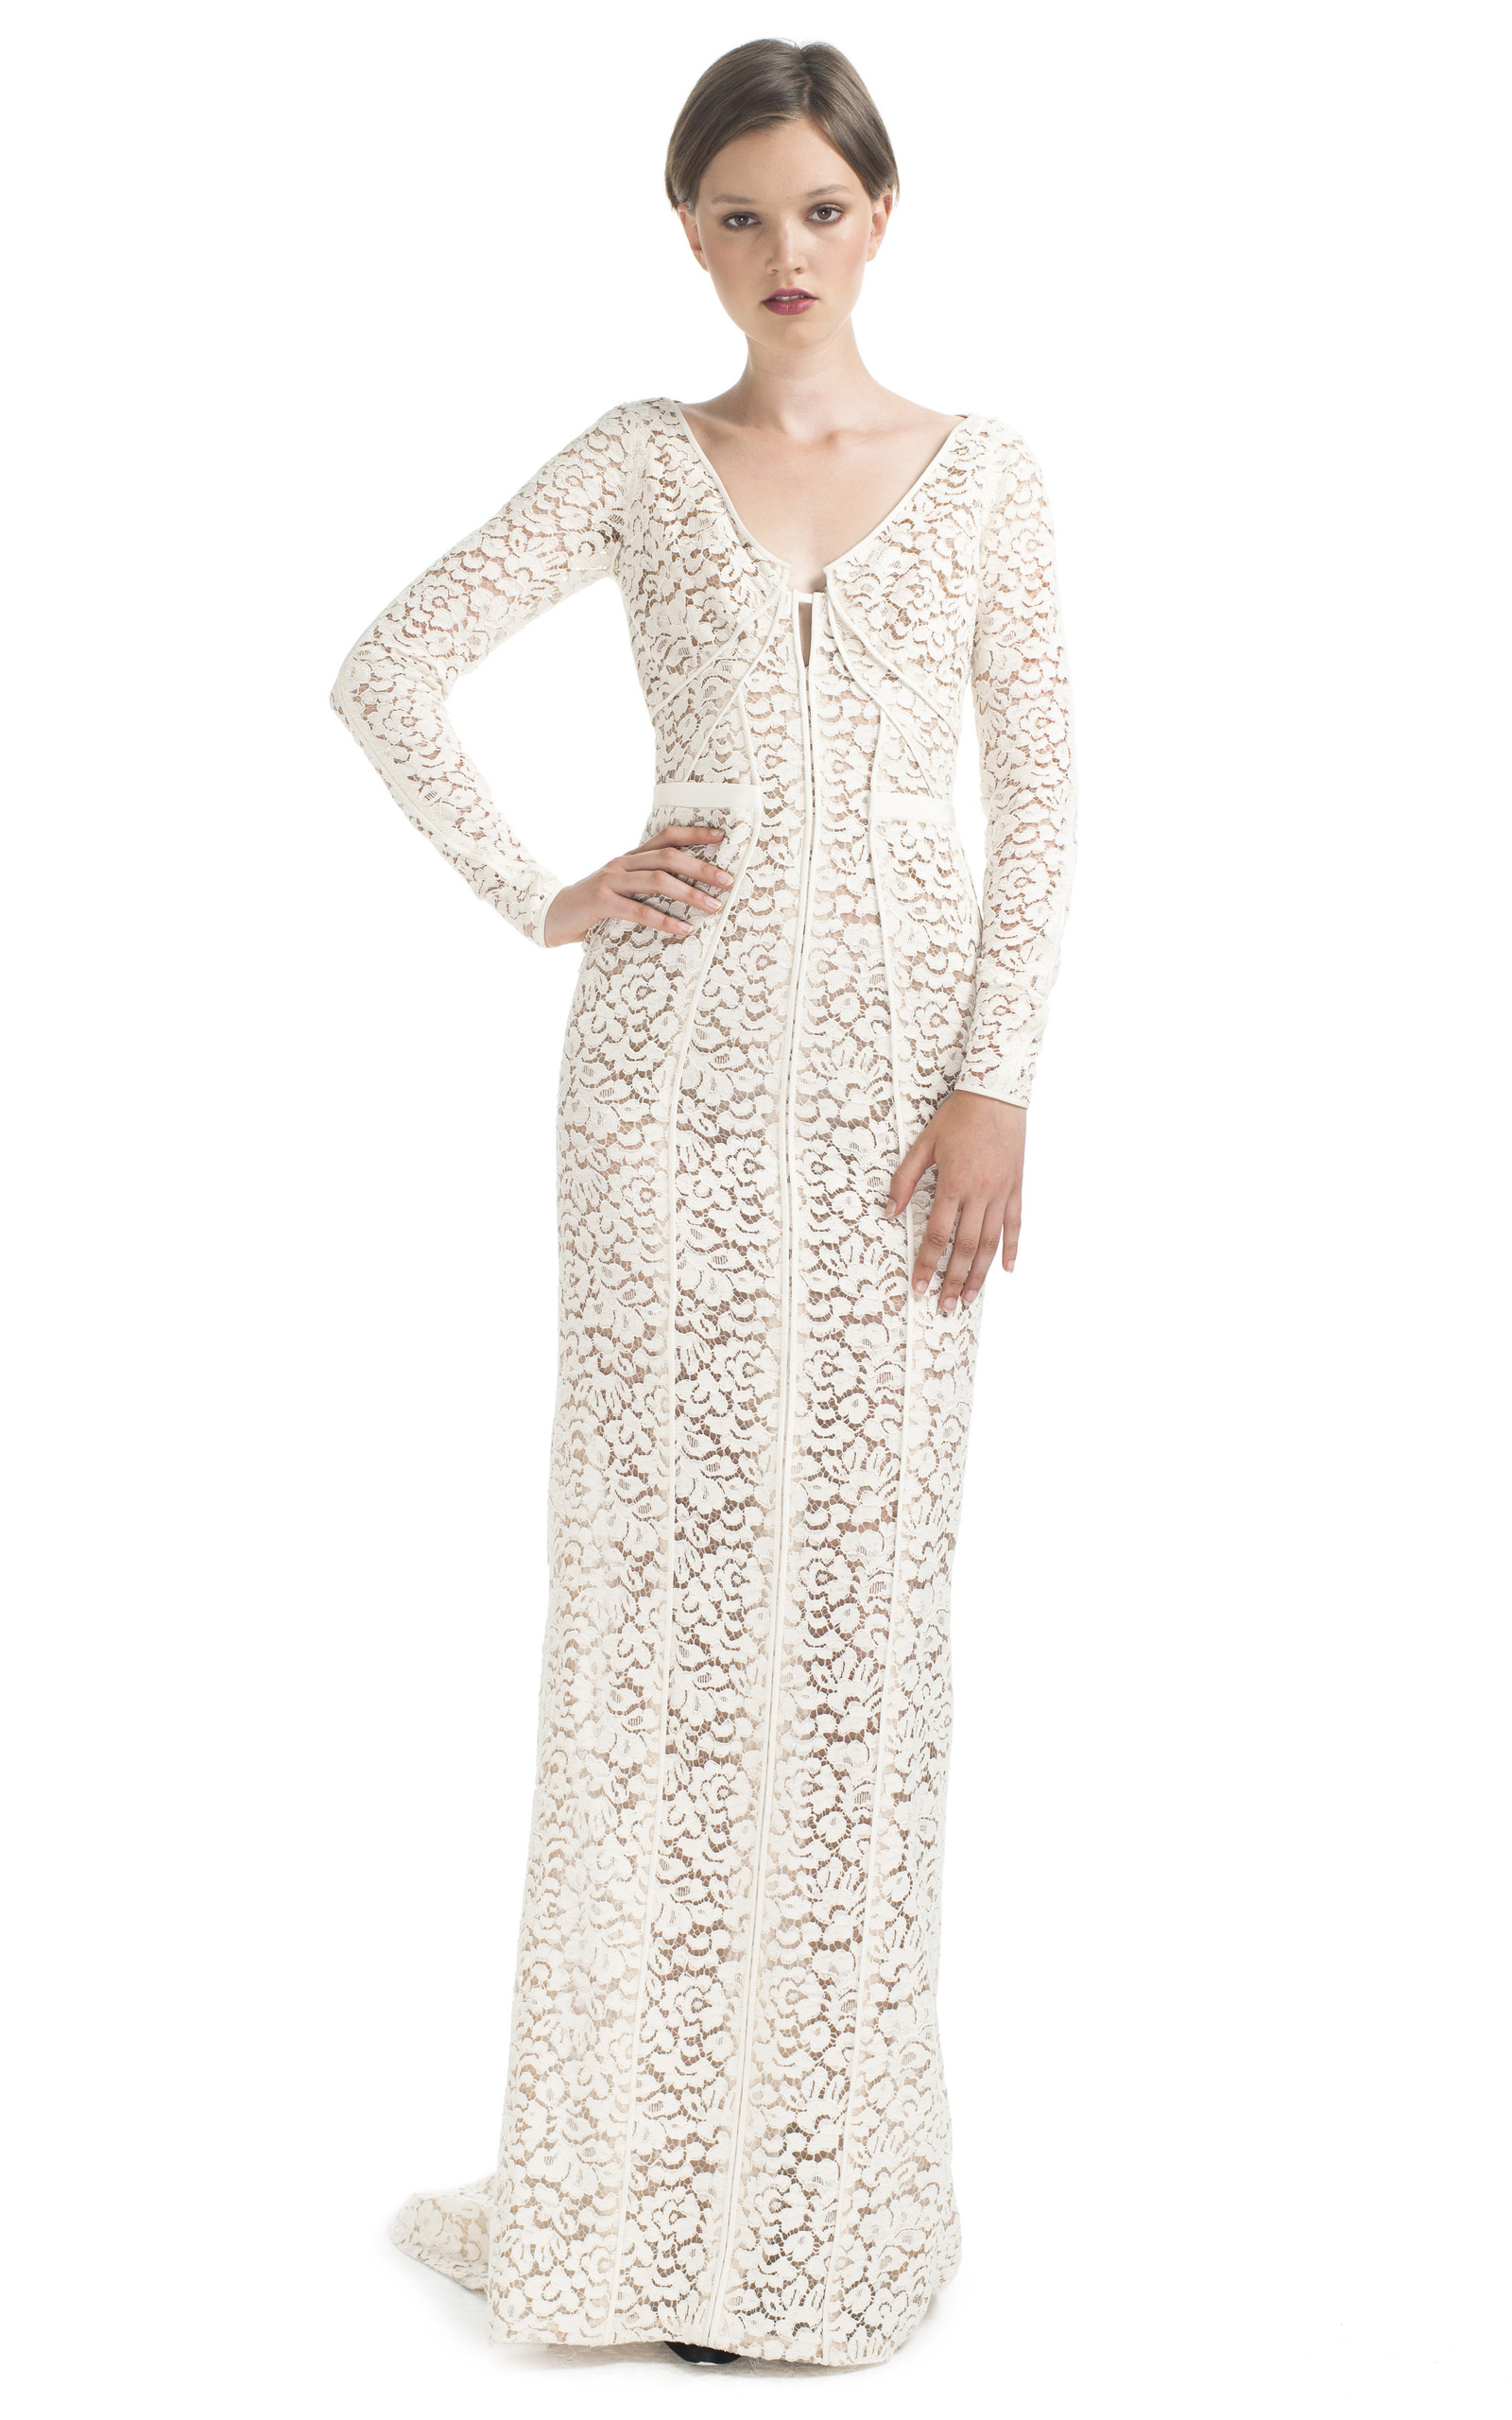 Long Sleeve Lace Evening Gown By J Mendel  Moda Operandi. Buy Vintage Wedding Dress Online Uk. Beach Wedding Dresses To Buy. Wedding Dresses Vintage. Ivory Victorian Wedding Dresses. Vintage Lace Corset Wedding Dresses. Vintage Wedding Dresses Pictures. Wedding Dresses Lace Mermaid Style. Rose Gold Wedding Dress Etsy